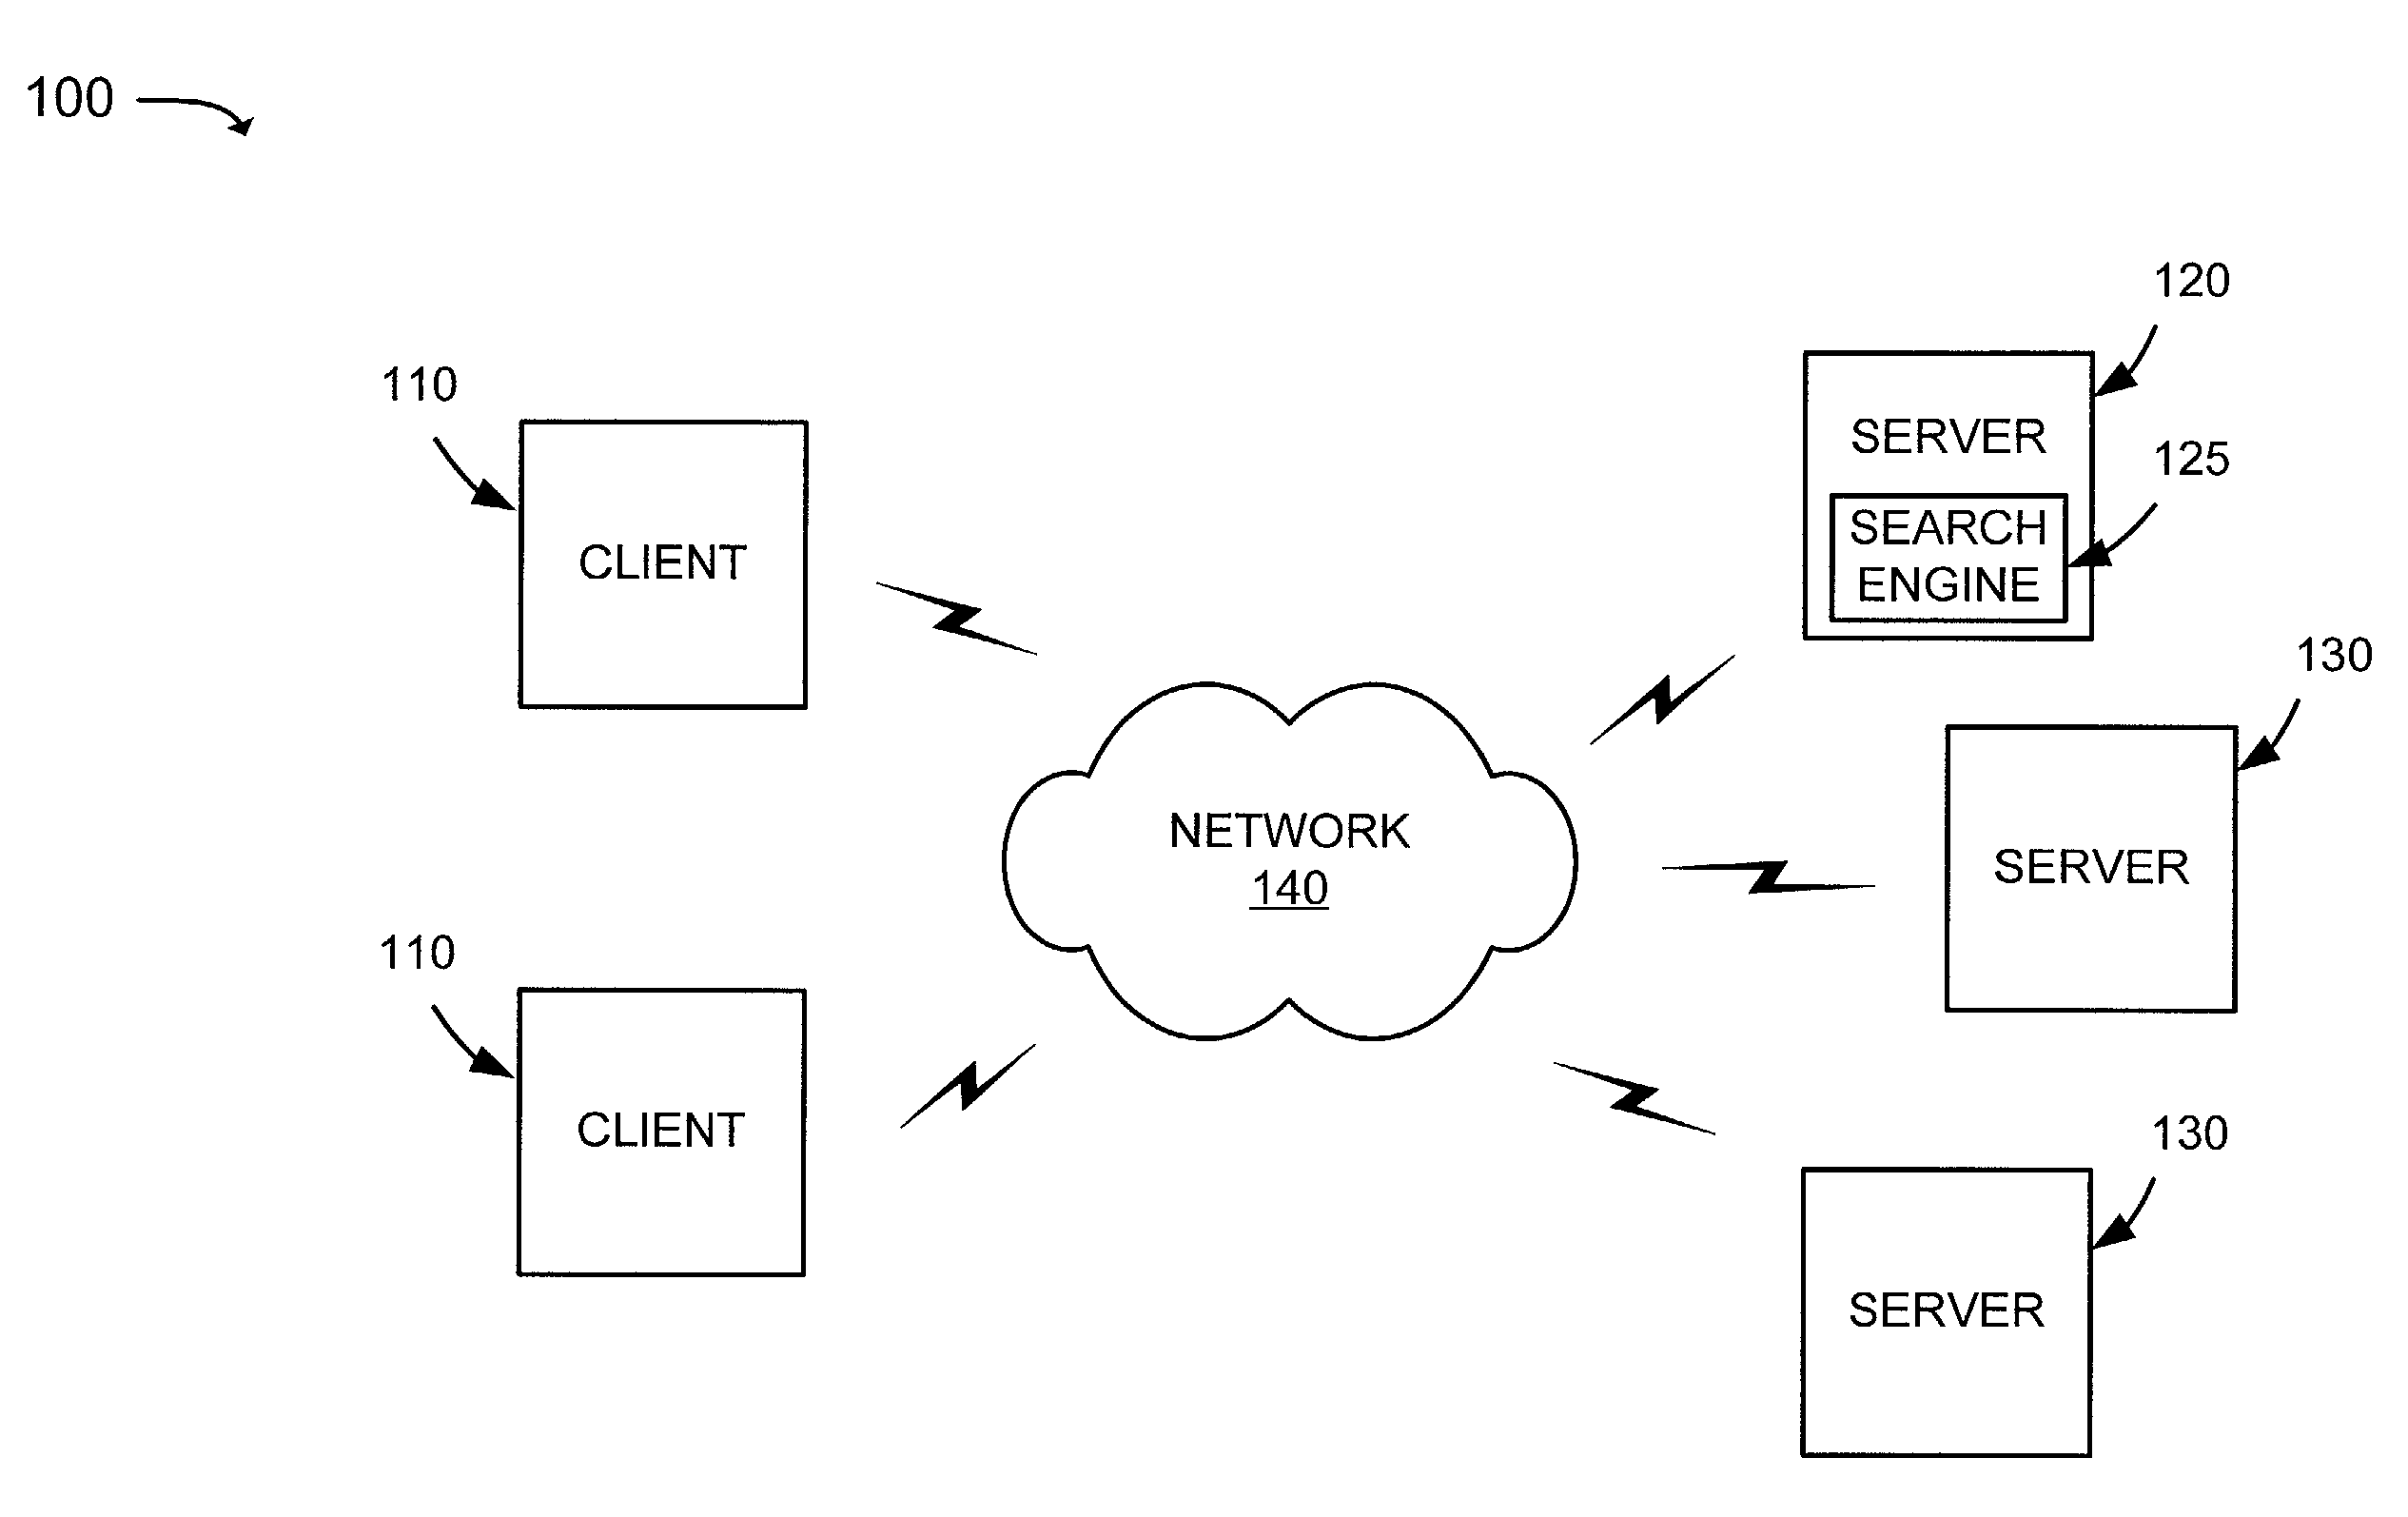 Google  patent by Mark Zuckerberg from 2008 for hypertext browser assistant - US7421432